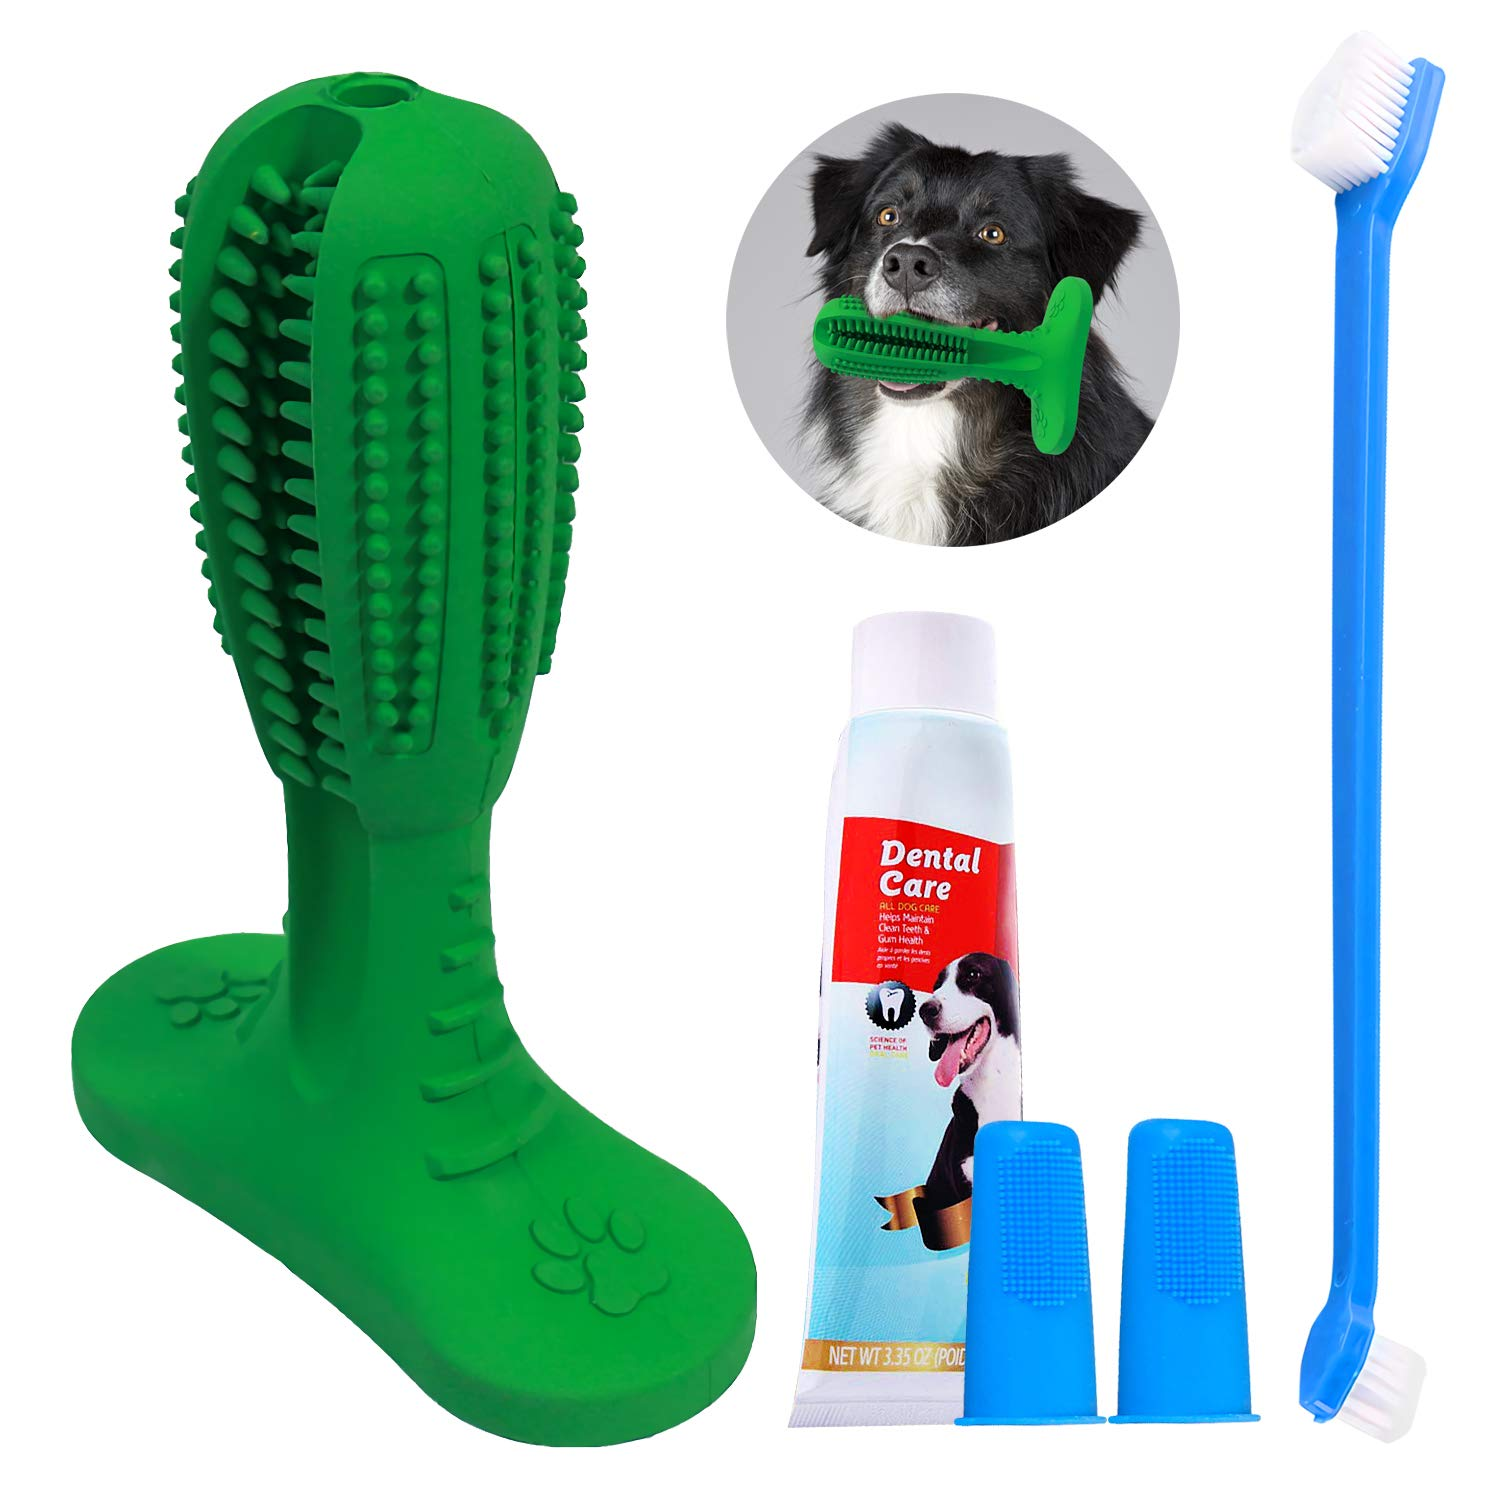 All Prime Dog Toothbrush Toy - Aug 2019 Upgrade- Also Included Free ($8 Value) Dog Teeth Cleaning Kit with 3 Dog Toothbrushes + Toothpaste - Dog Toothbrush Chew Toy deep Cleans - Dog Toothbrush Stick by All Prime